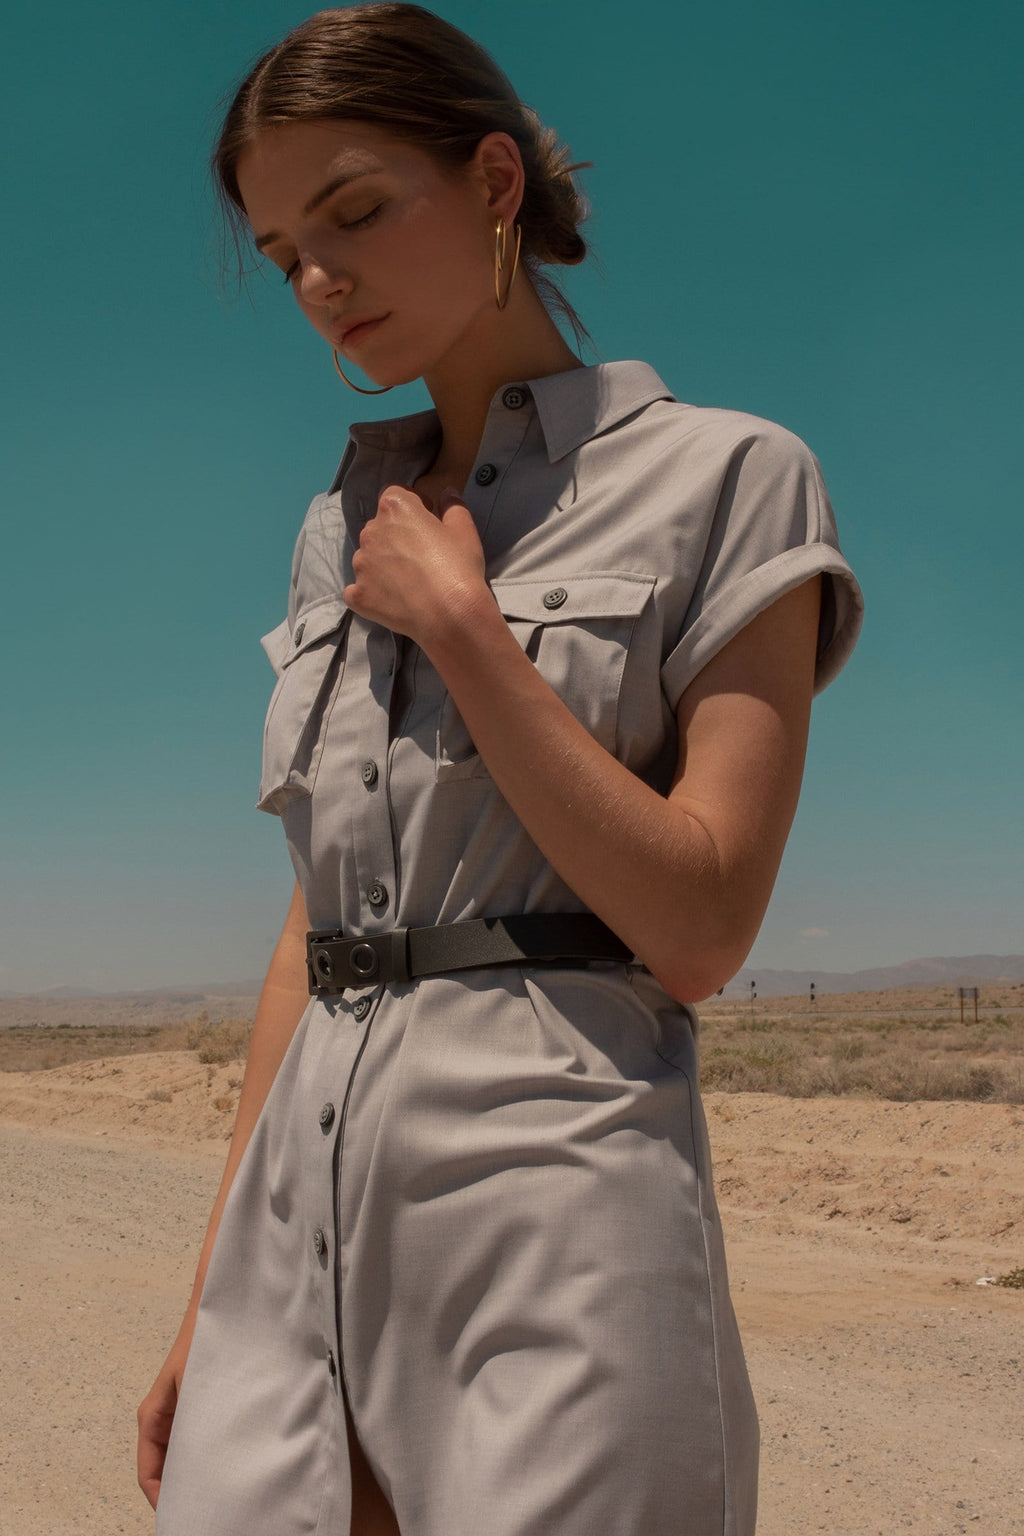 brunette model in desert wearing grey utility dress by J.ING